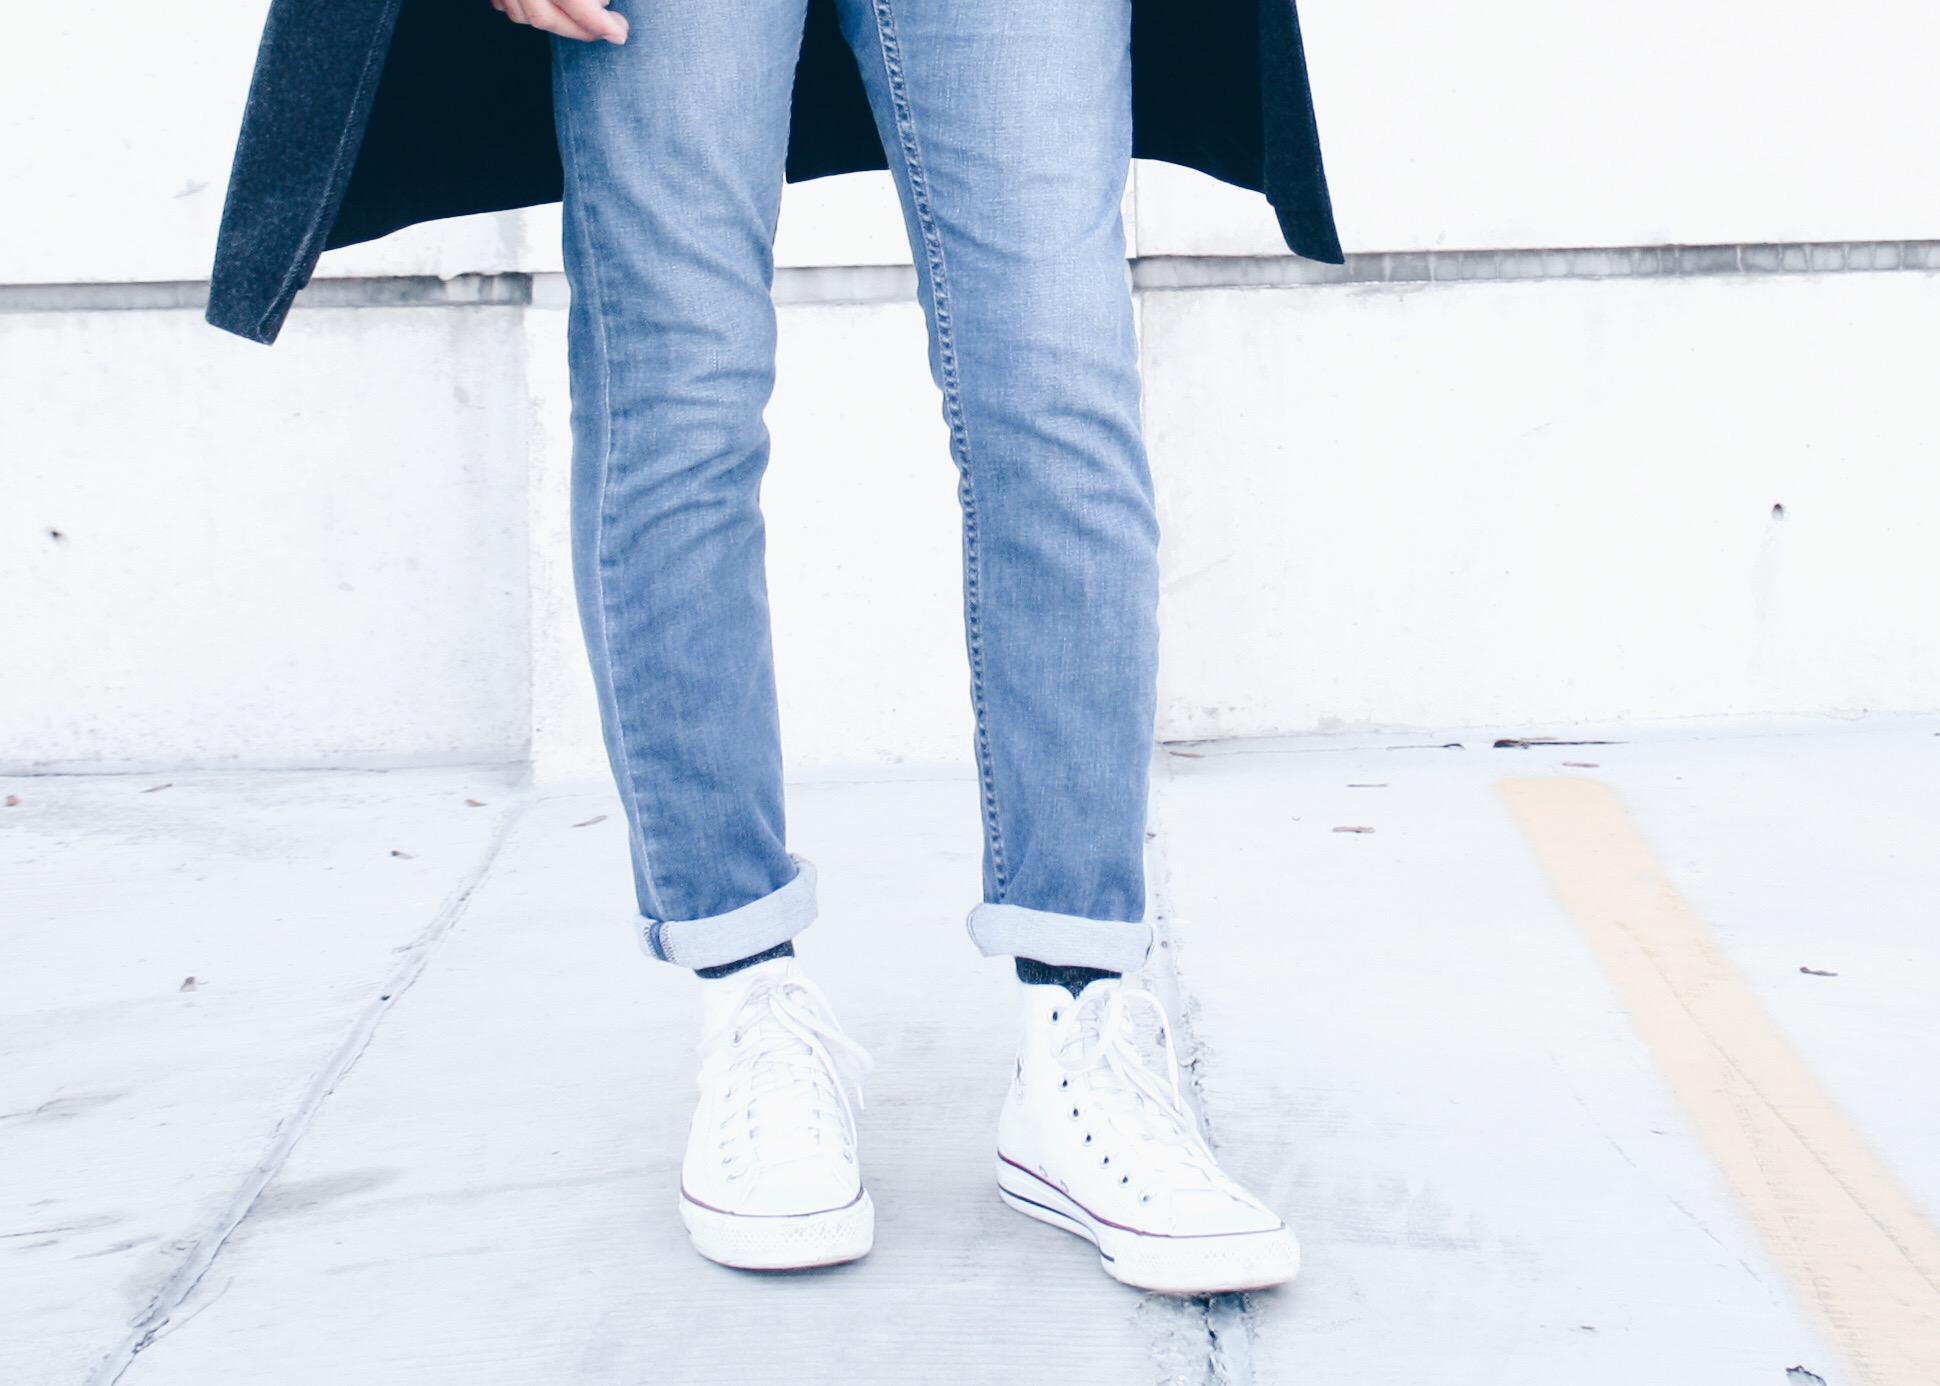 sam-c-perry-denim-on-denim-chunky-knit-converse-sneakers.jpg